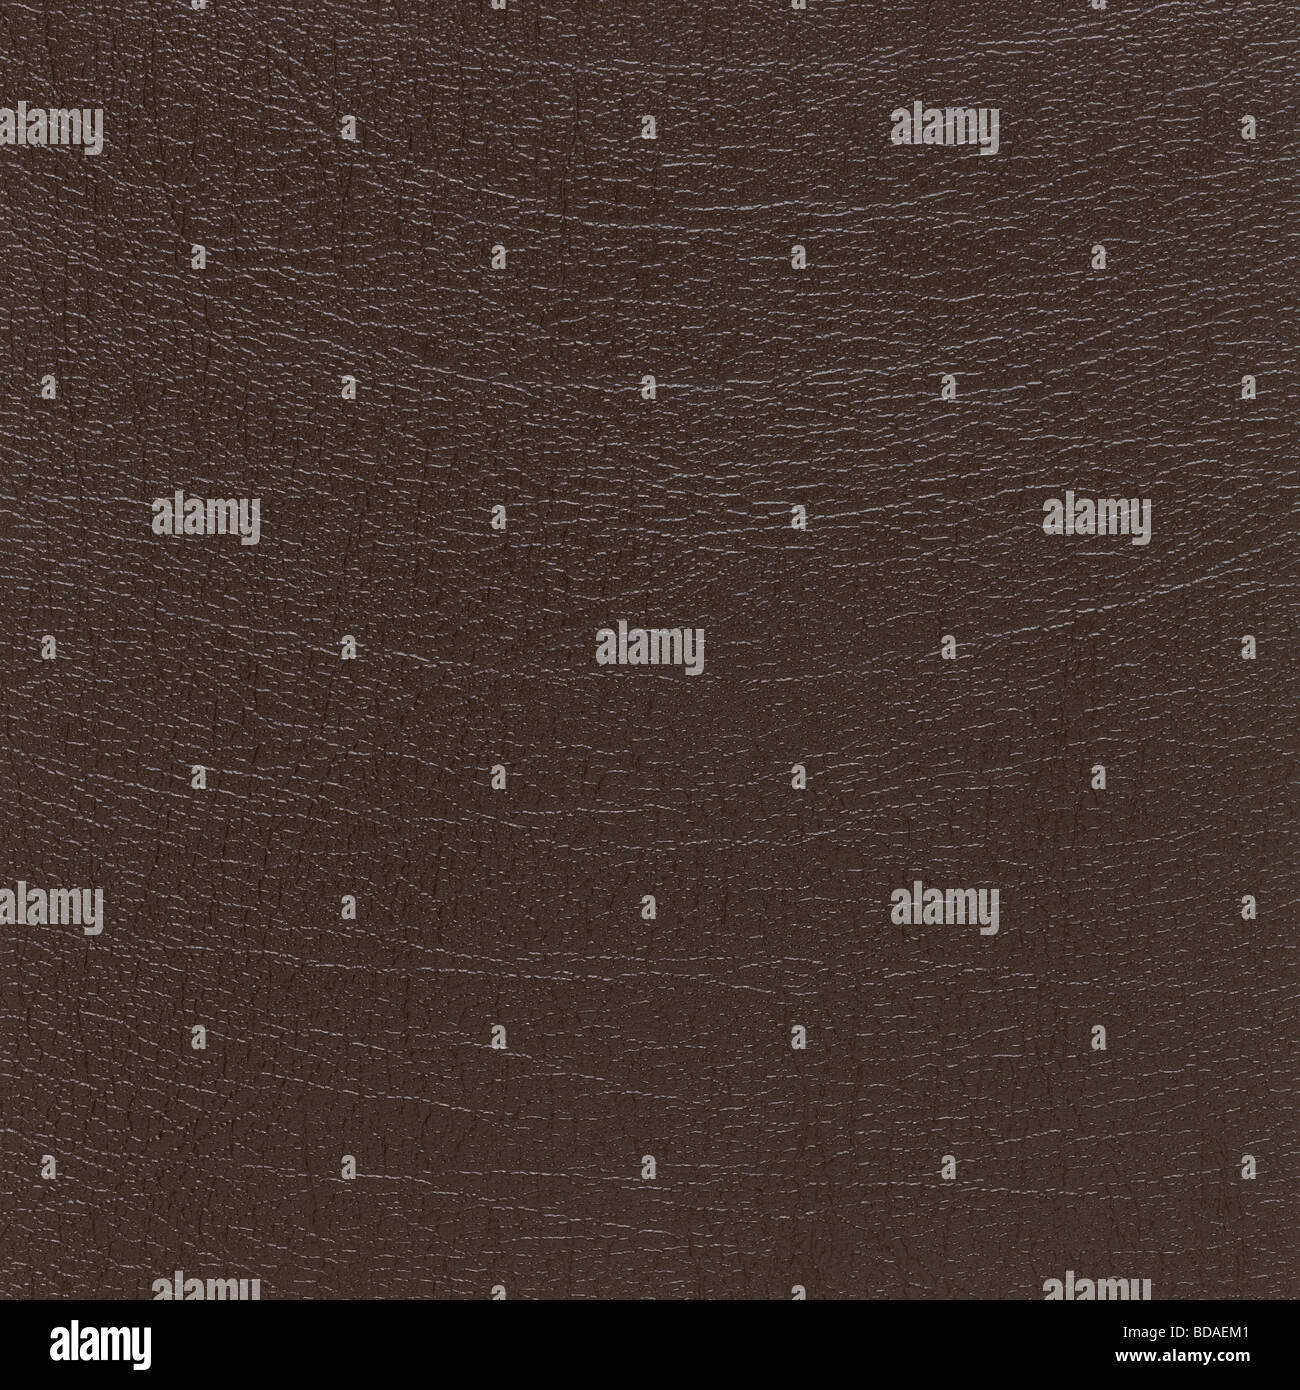 BROWN LEATHER BACKGROUND - Stock Image